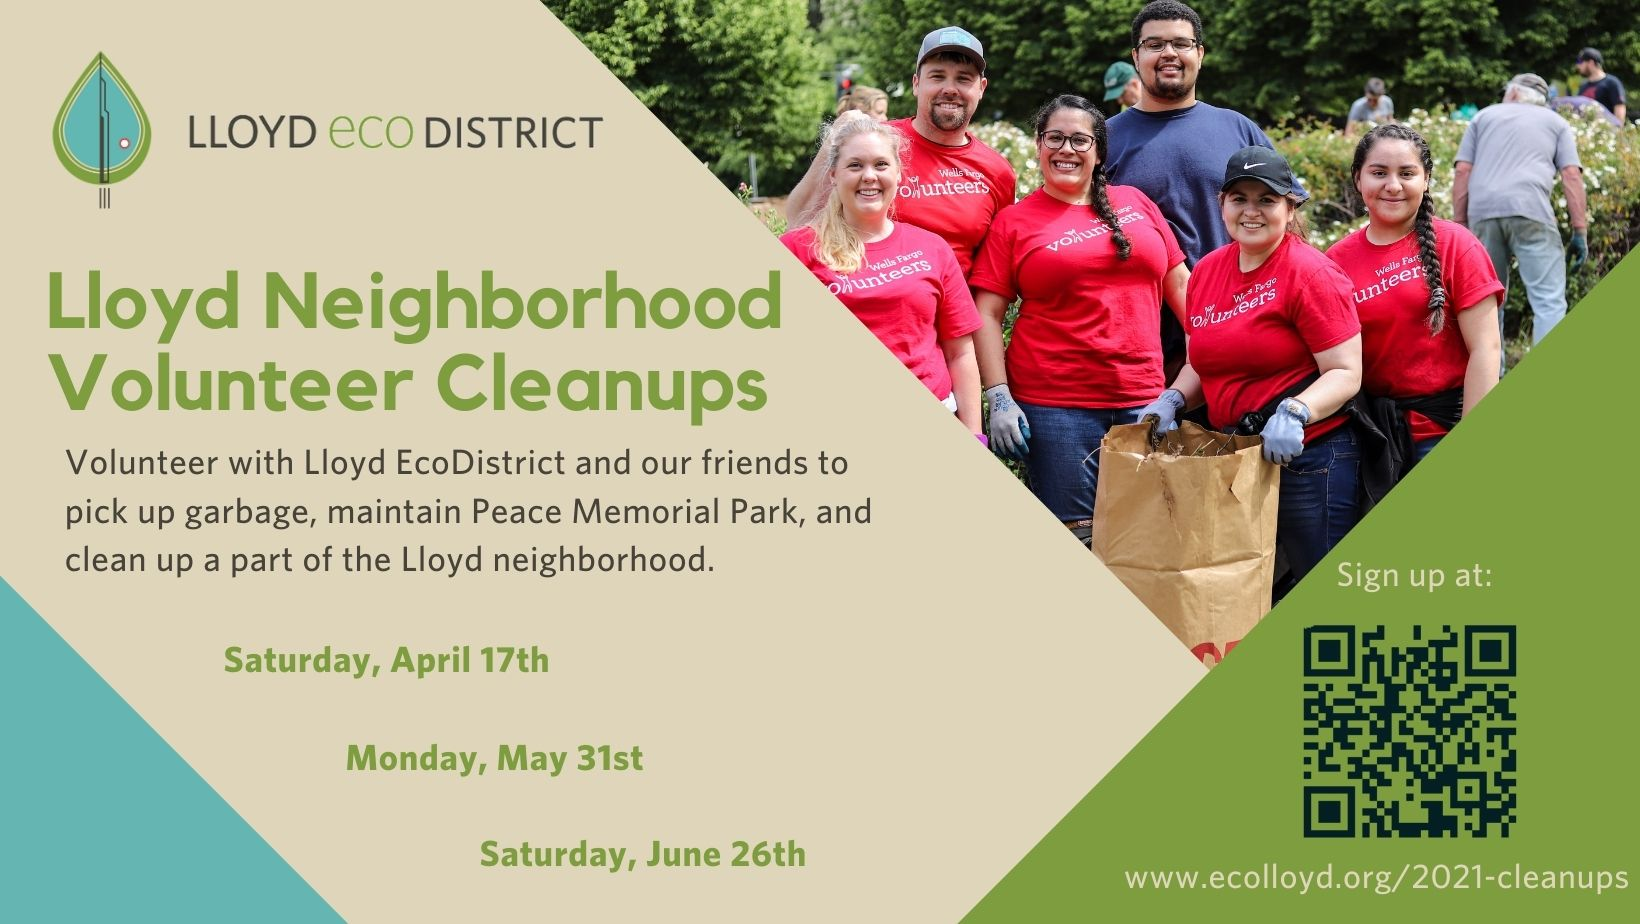 Peace Memorial Park / Lloyd EcoDistrict Cleanup